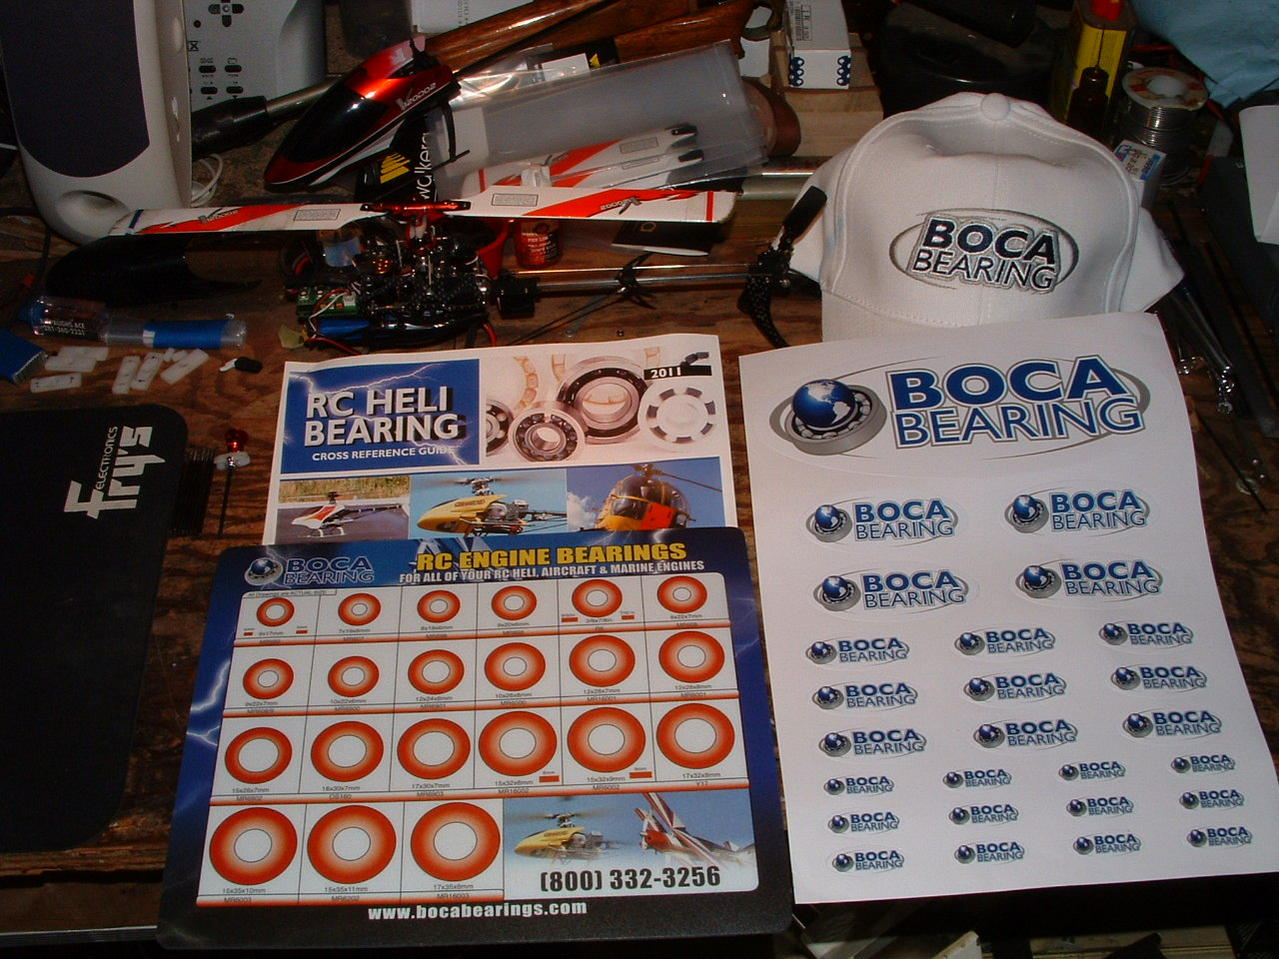 Name: DSCF0142.jpg Views: 198 Size: 212.1 KB Description: I recieved all this from Boca bearings free of charge for writing this bearing information in my blog. There is a hat,stickers,cool mouse pad and heli bearing kit price brochure.